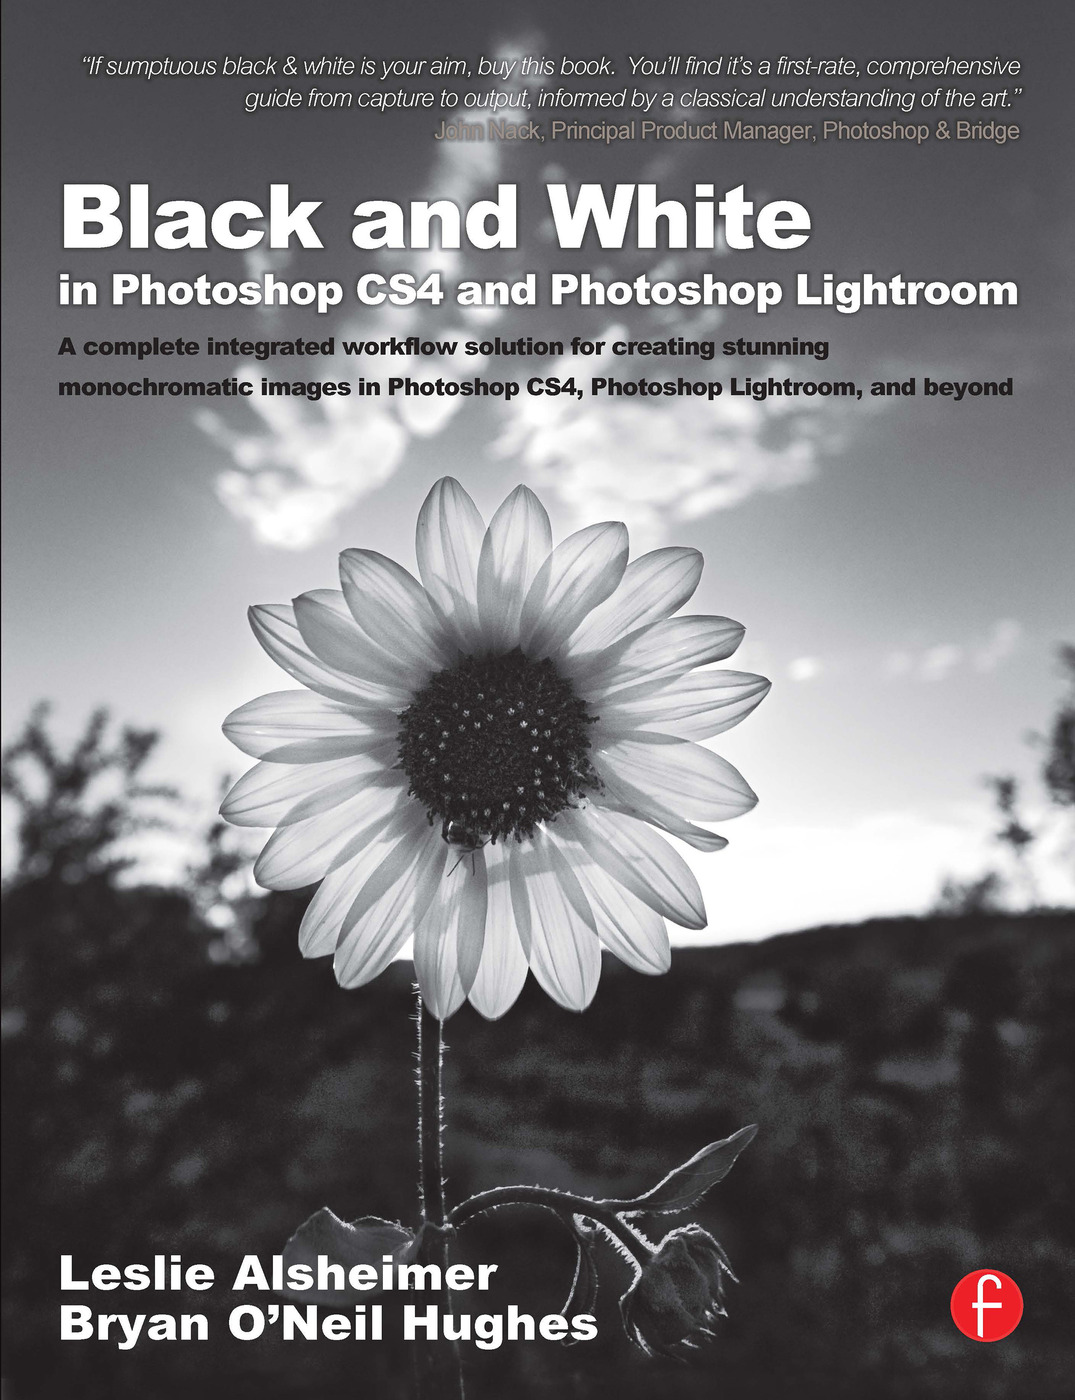 Black and White in Photoshop CS4 and Photoshop Lightroom: A complete integrated workflow solution for creating stunning monochromatic images in Photoshop CS4, Photoshop Lightroom, and beyond book cover